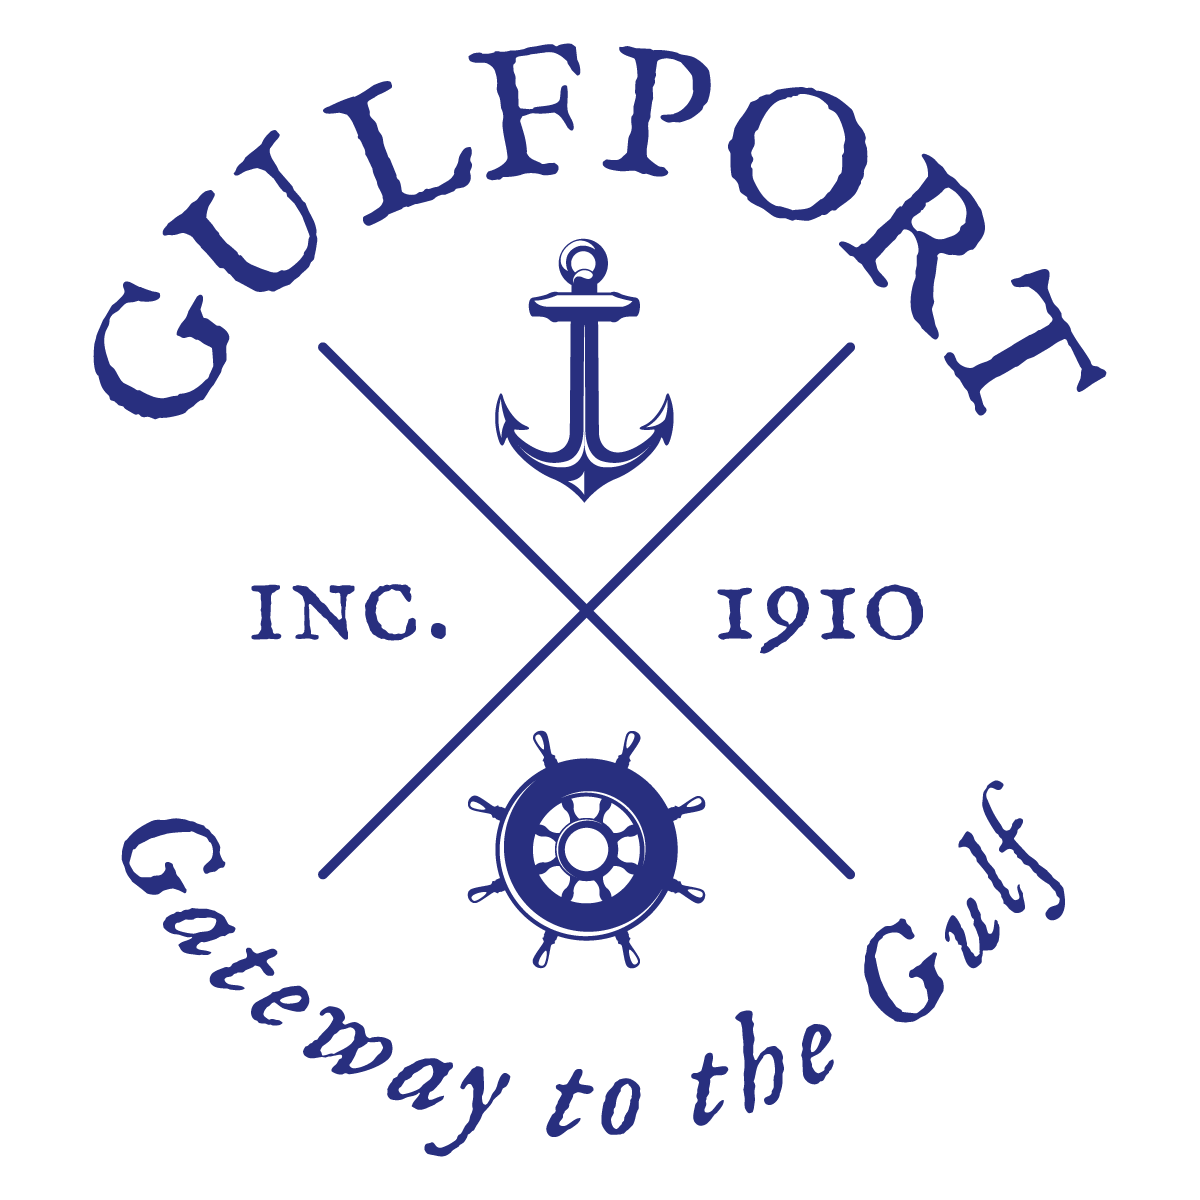 city of gulfport logo